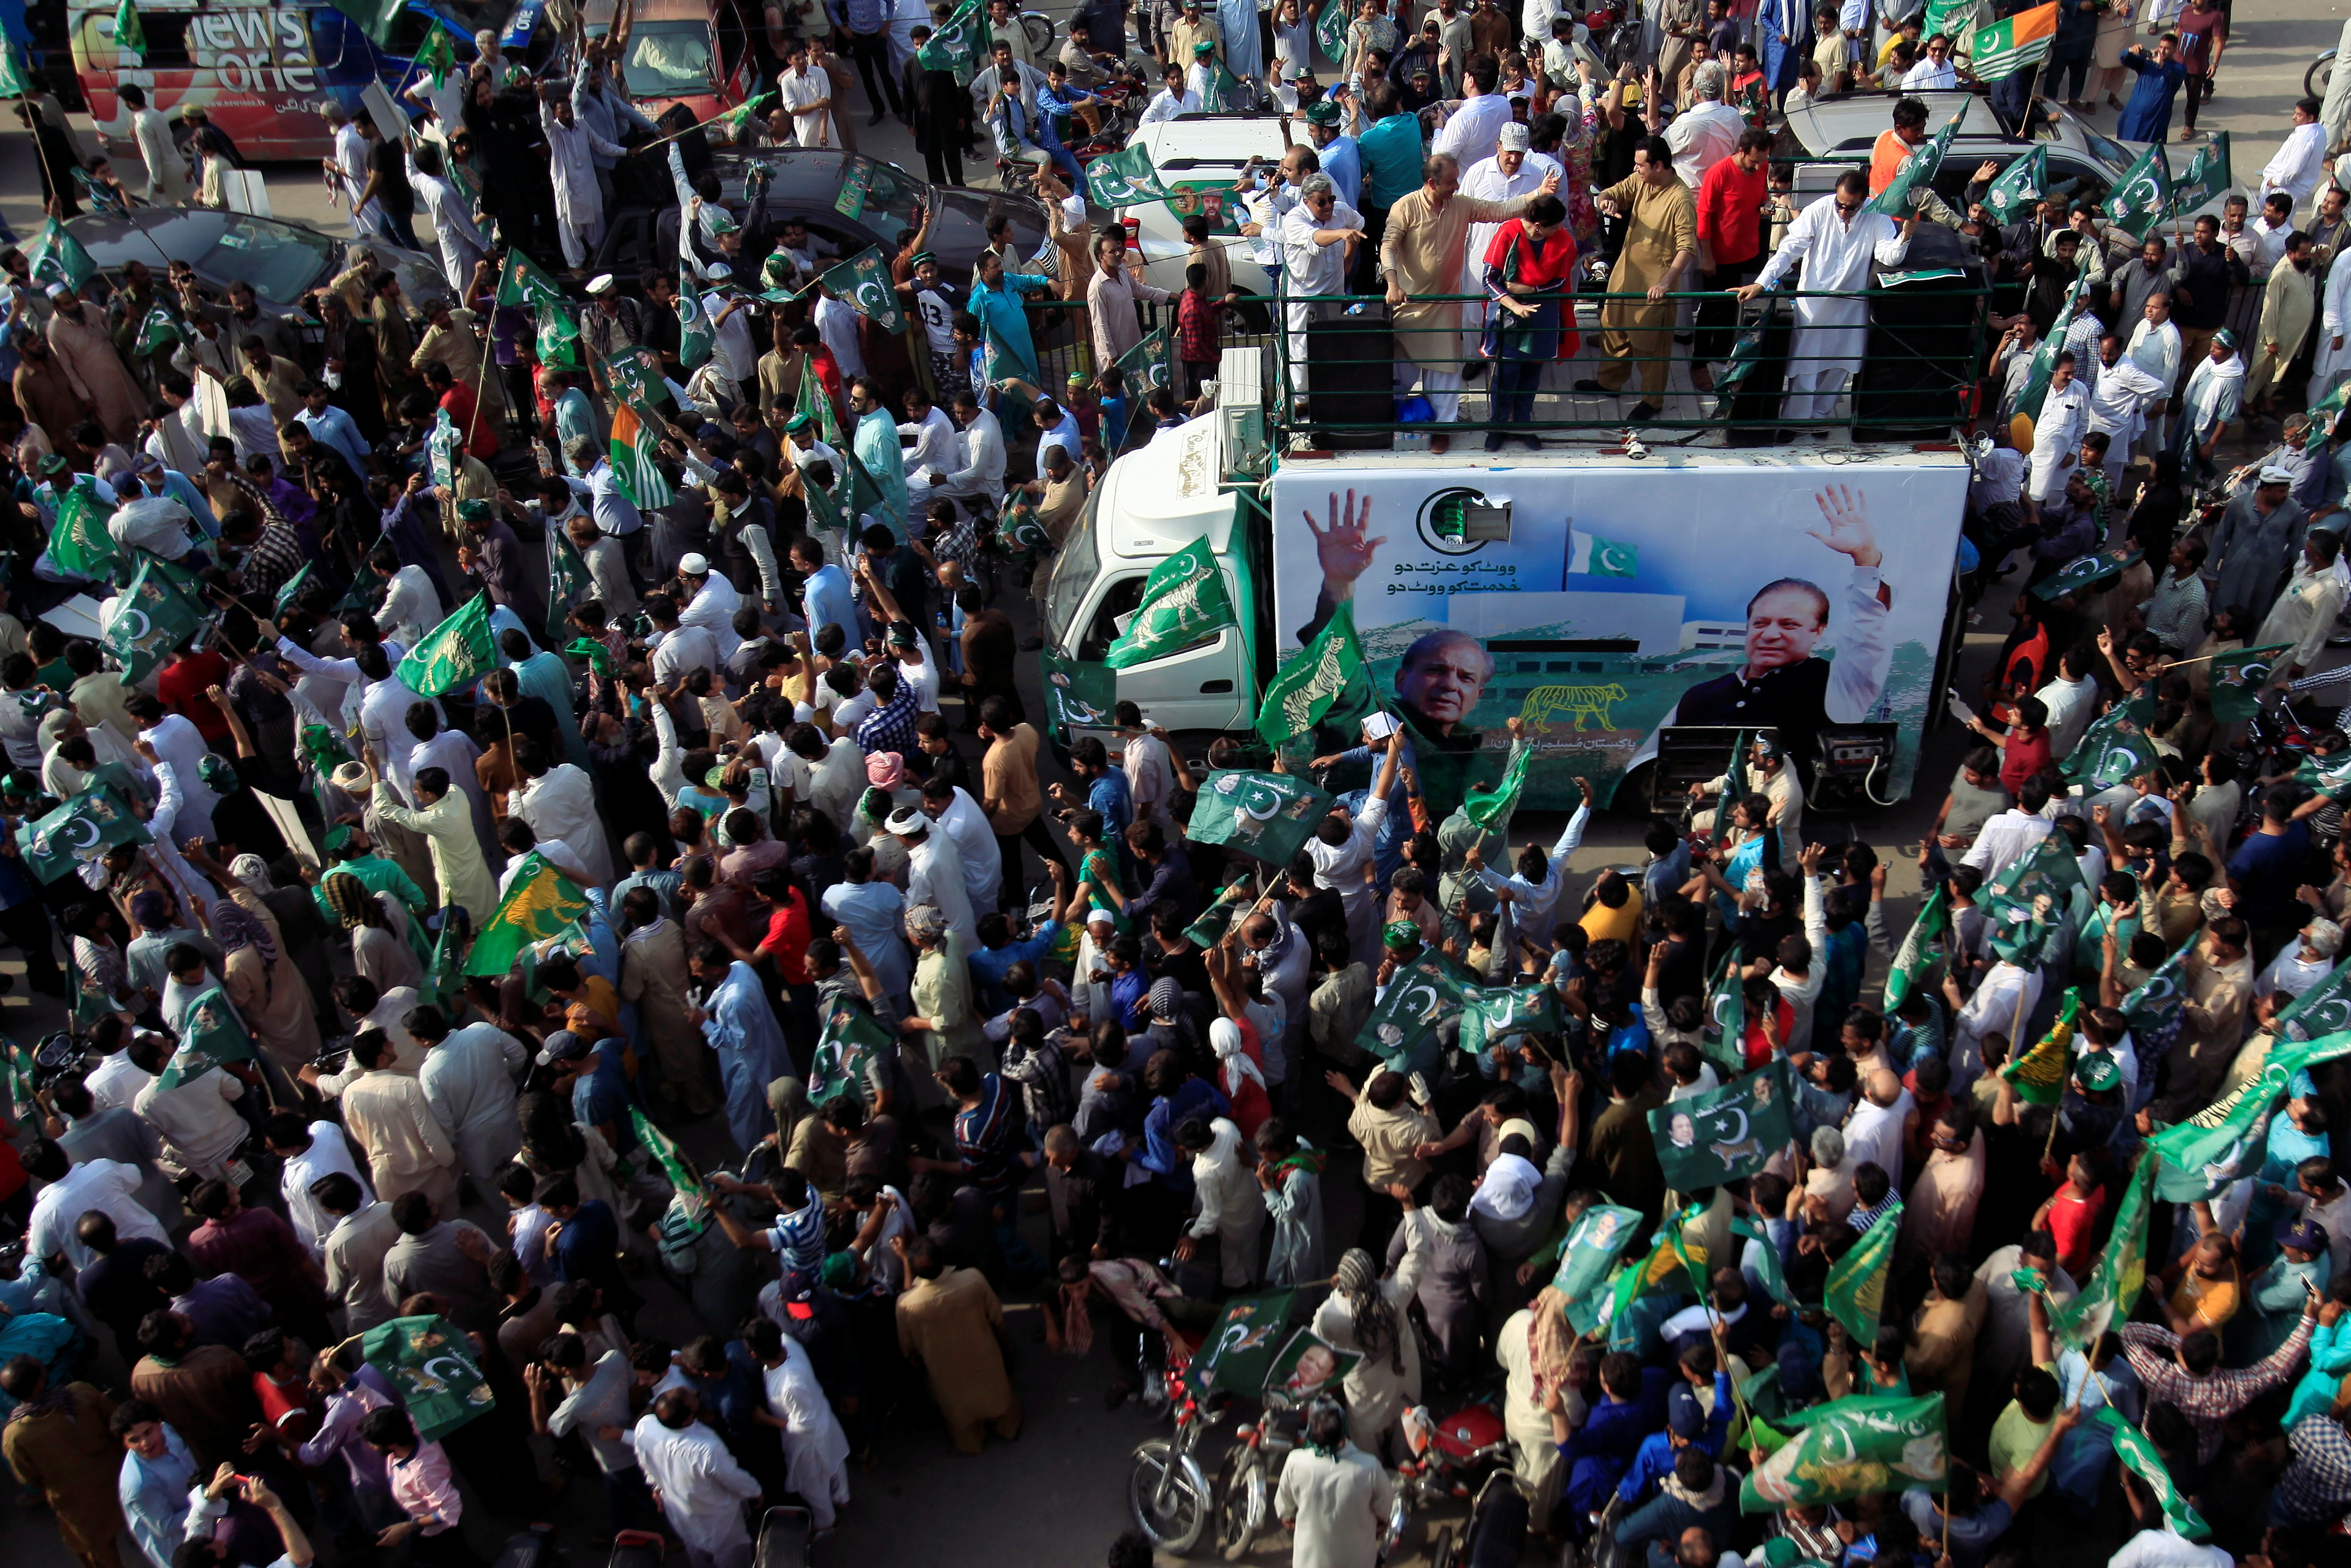 Supporters of the Pakistan Muslim League - Nawaz (PML-N) chant and march towards the airport to welcome ousted Prime Minister Nawaz Sharif and his daughter Maryam, in Lahore, Pakistan July 13, 2018. REUTERS/Mohsin Raza - RC17840893C0